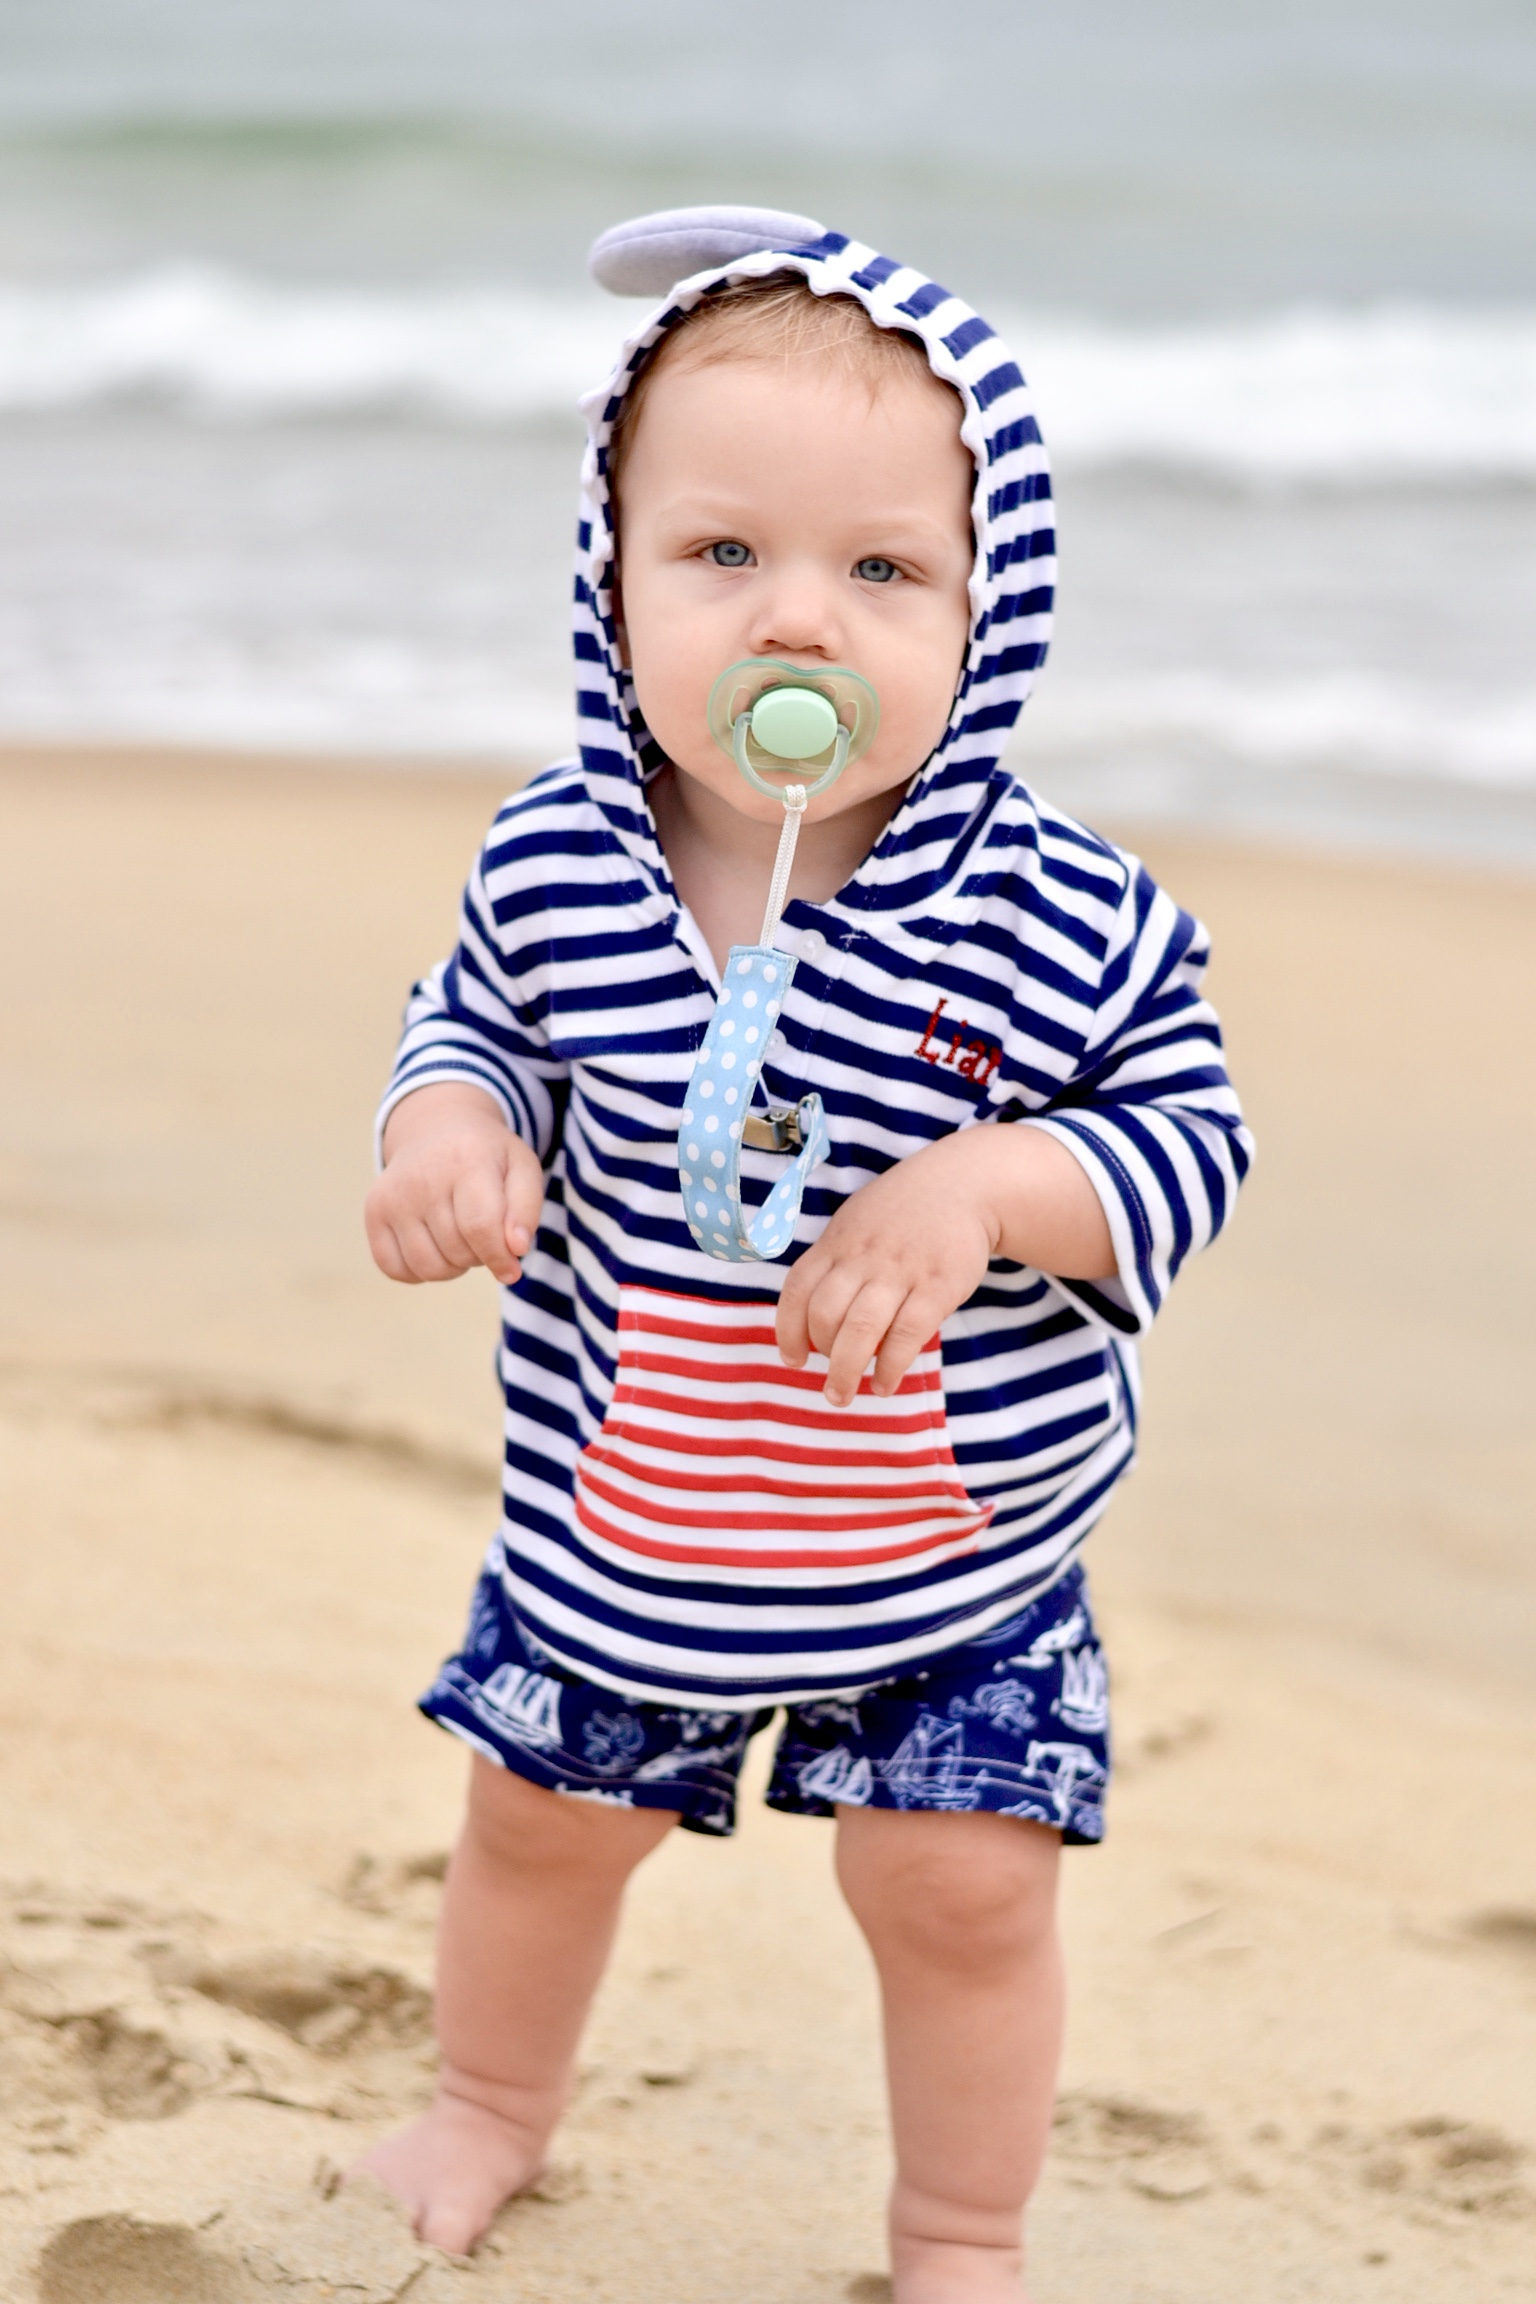 Vacation Survival Tips with Small Children - The Blessed Mess Blog - www.theblessedmessblog.com